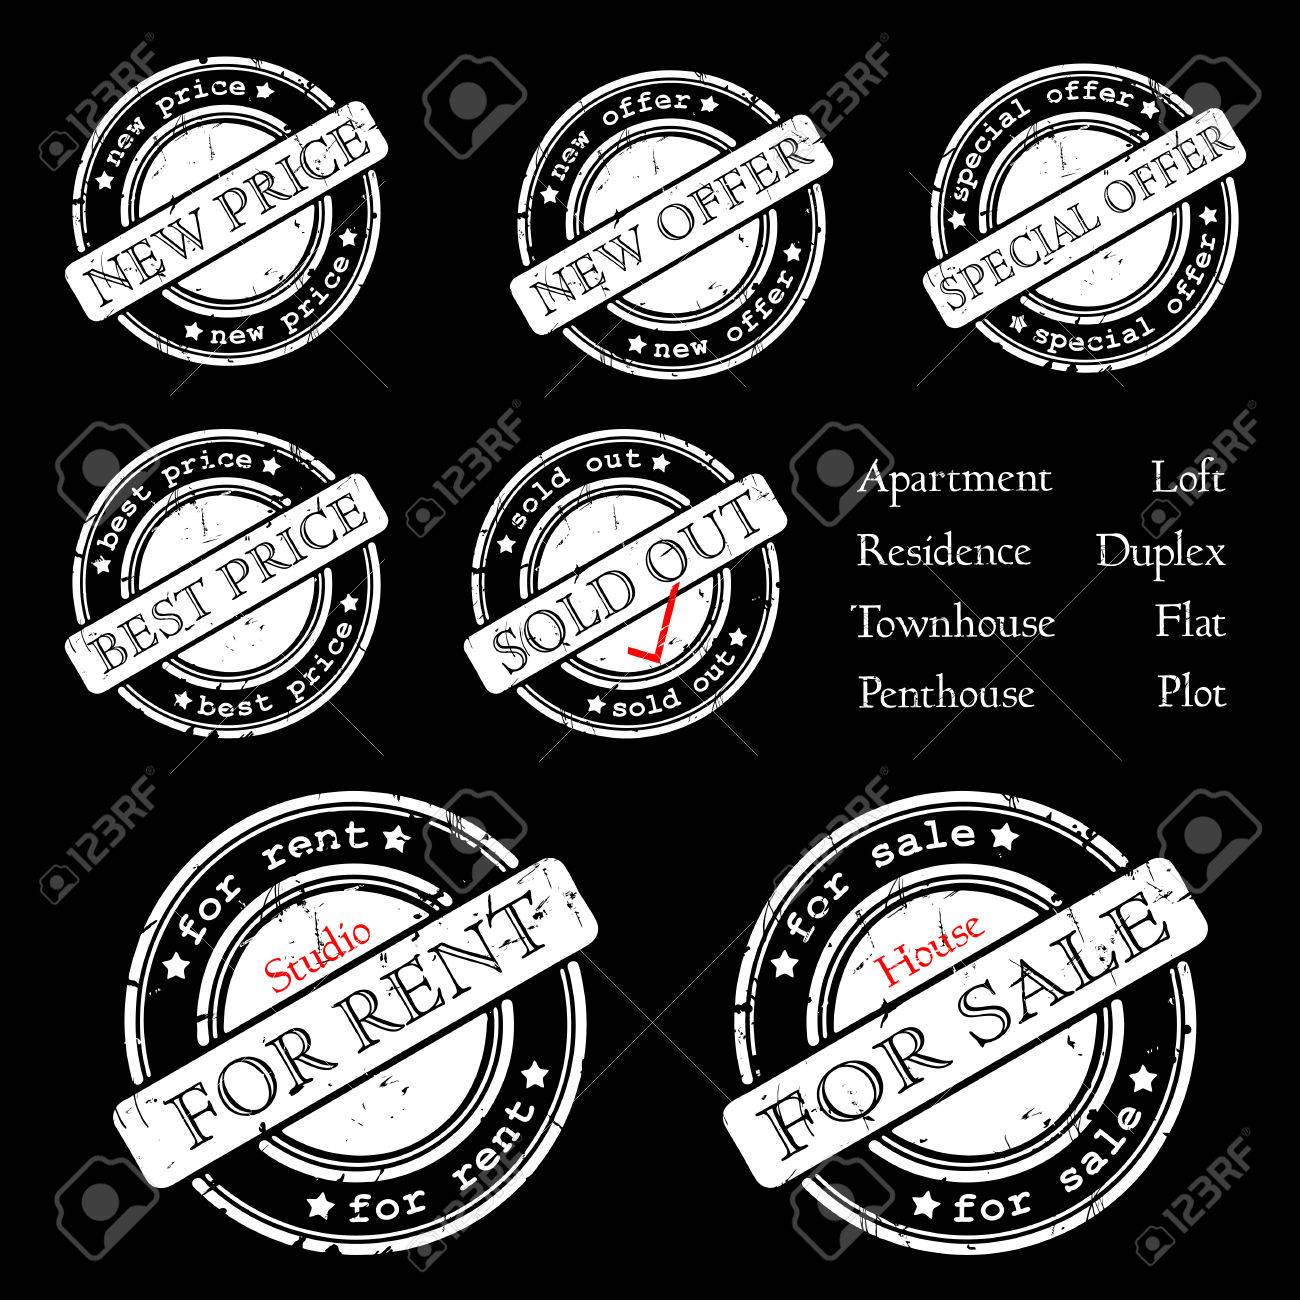 SALE, RENT, SPECIAL OFFER - stamp Stock Vector - 7434384